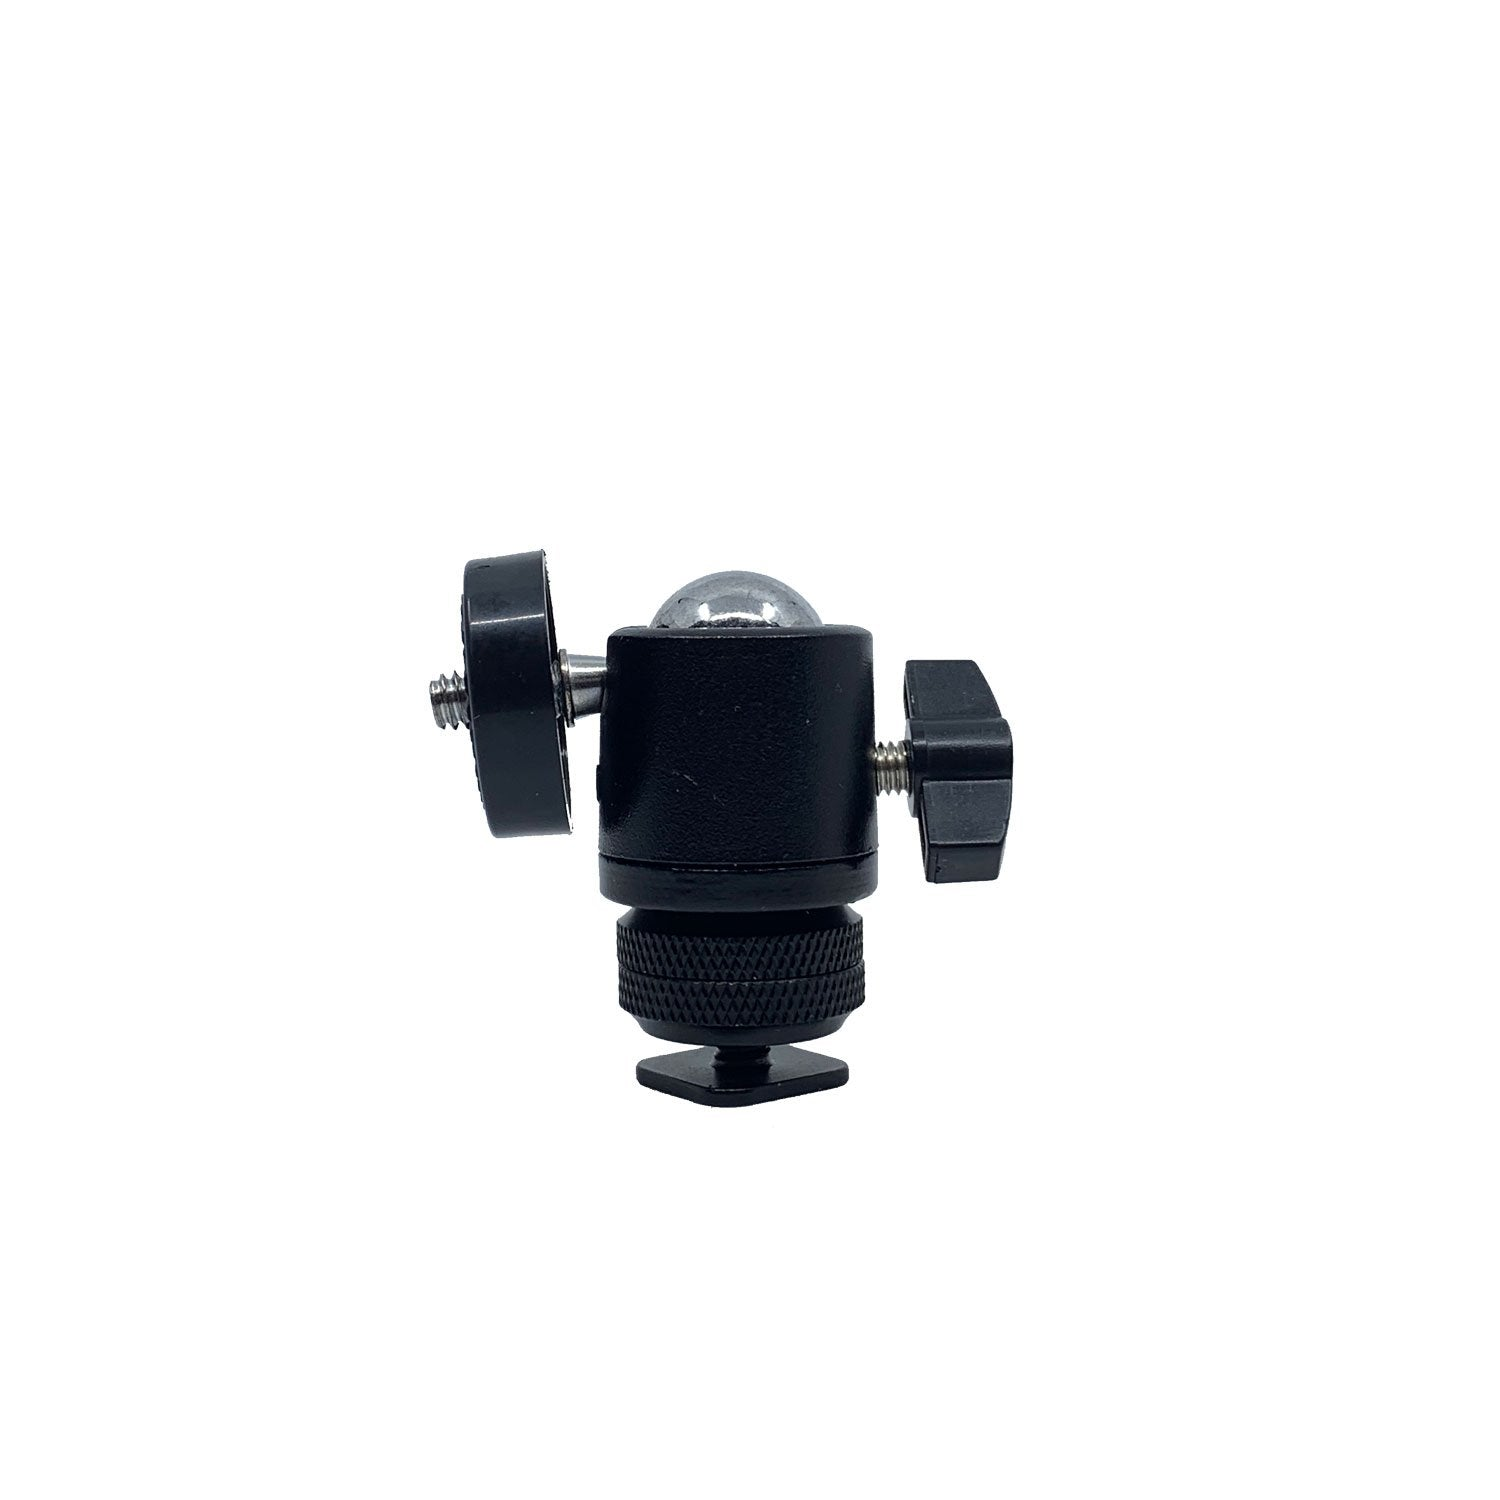 Camera / Phone Ball Head Bracket Mount